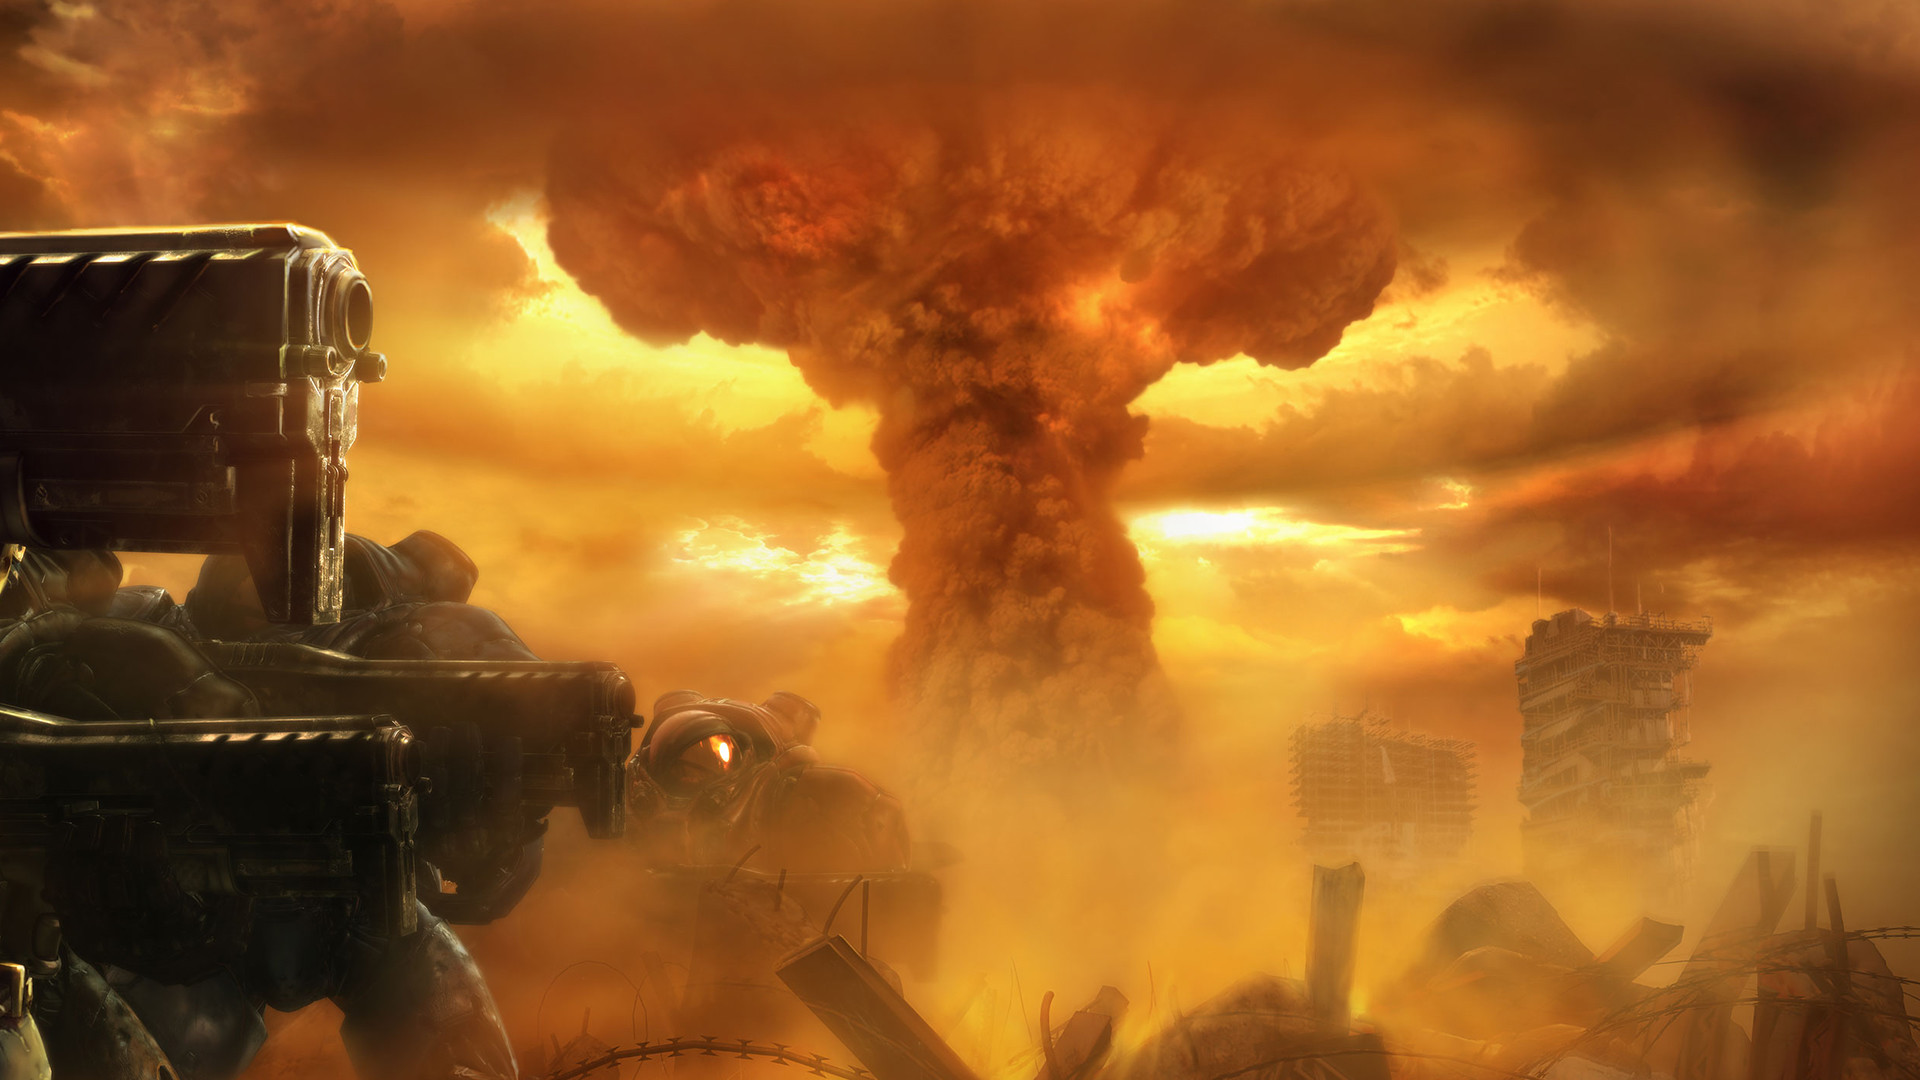 1920x1080 Mushroom Cloud Wallpapers 43